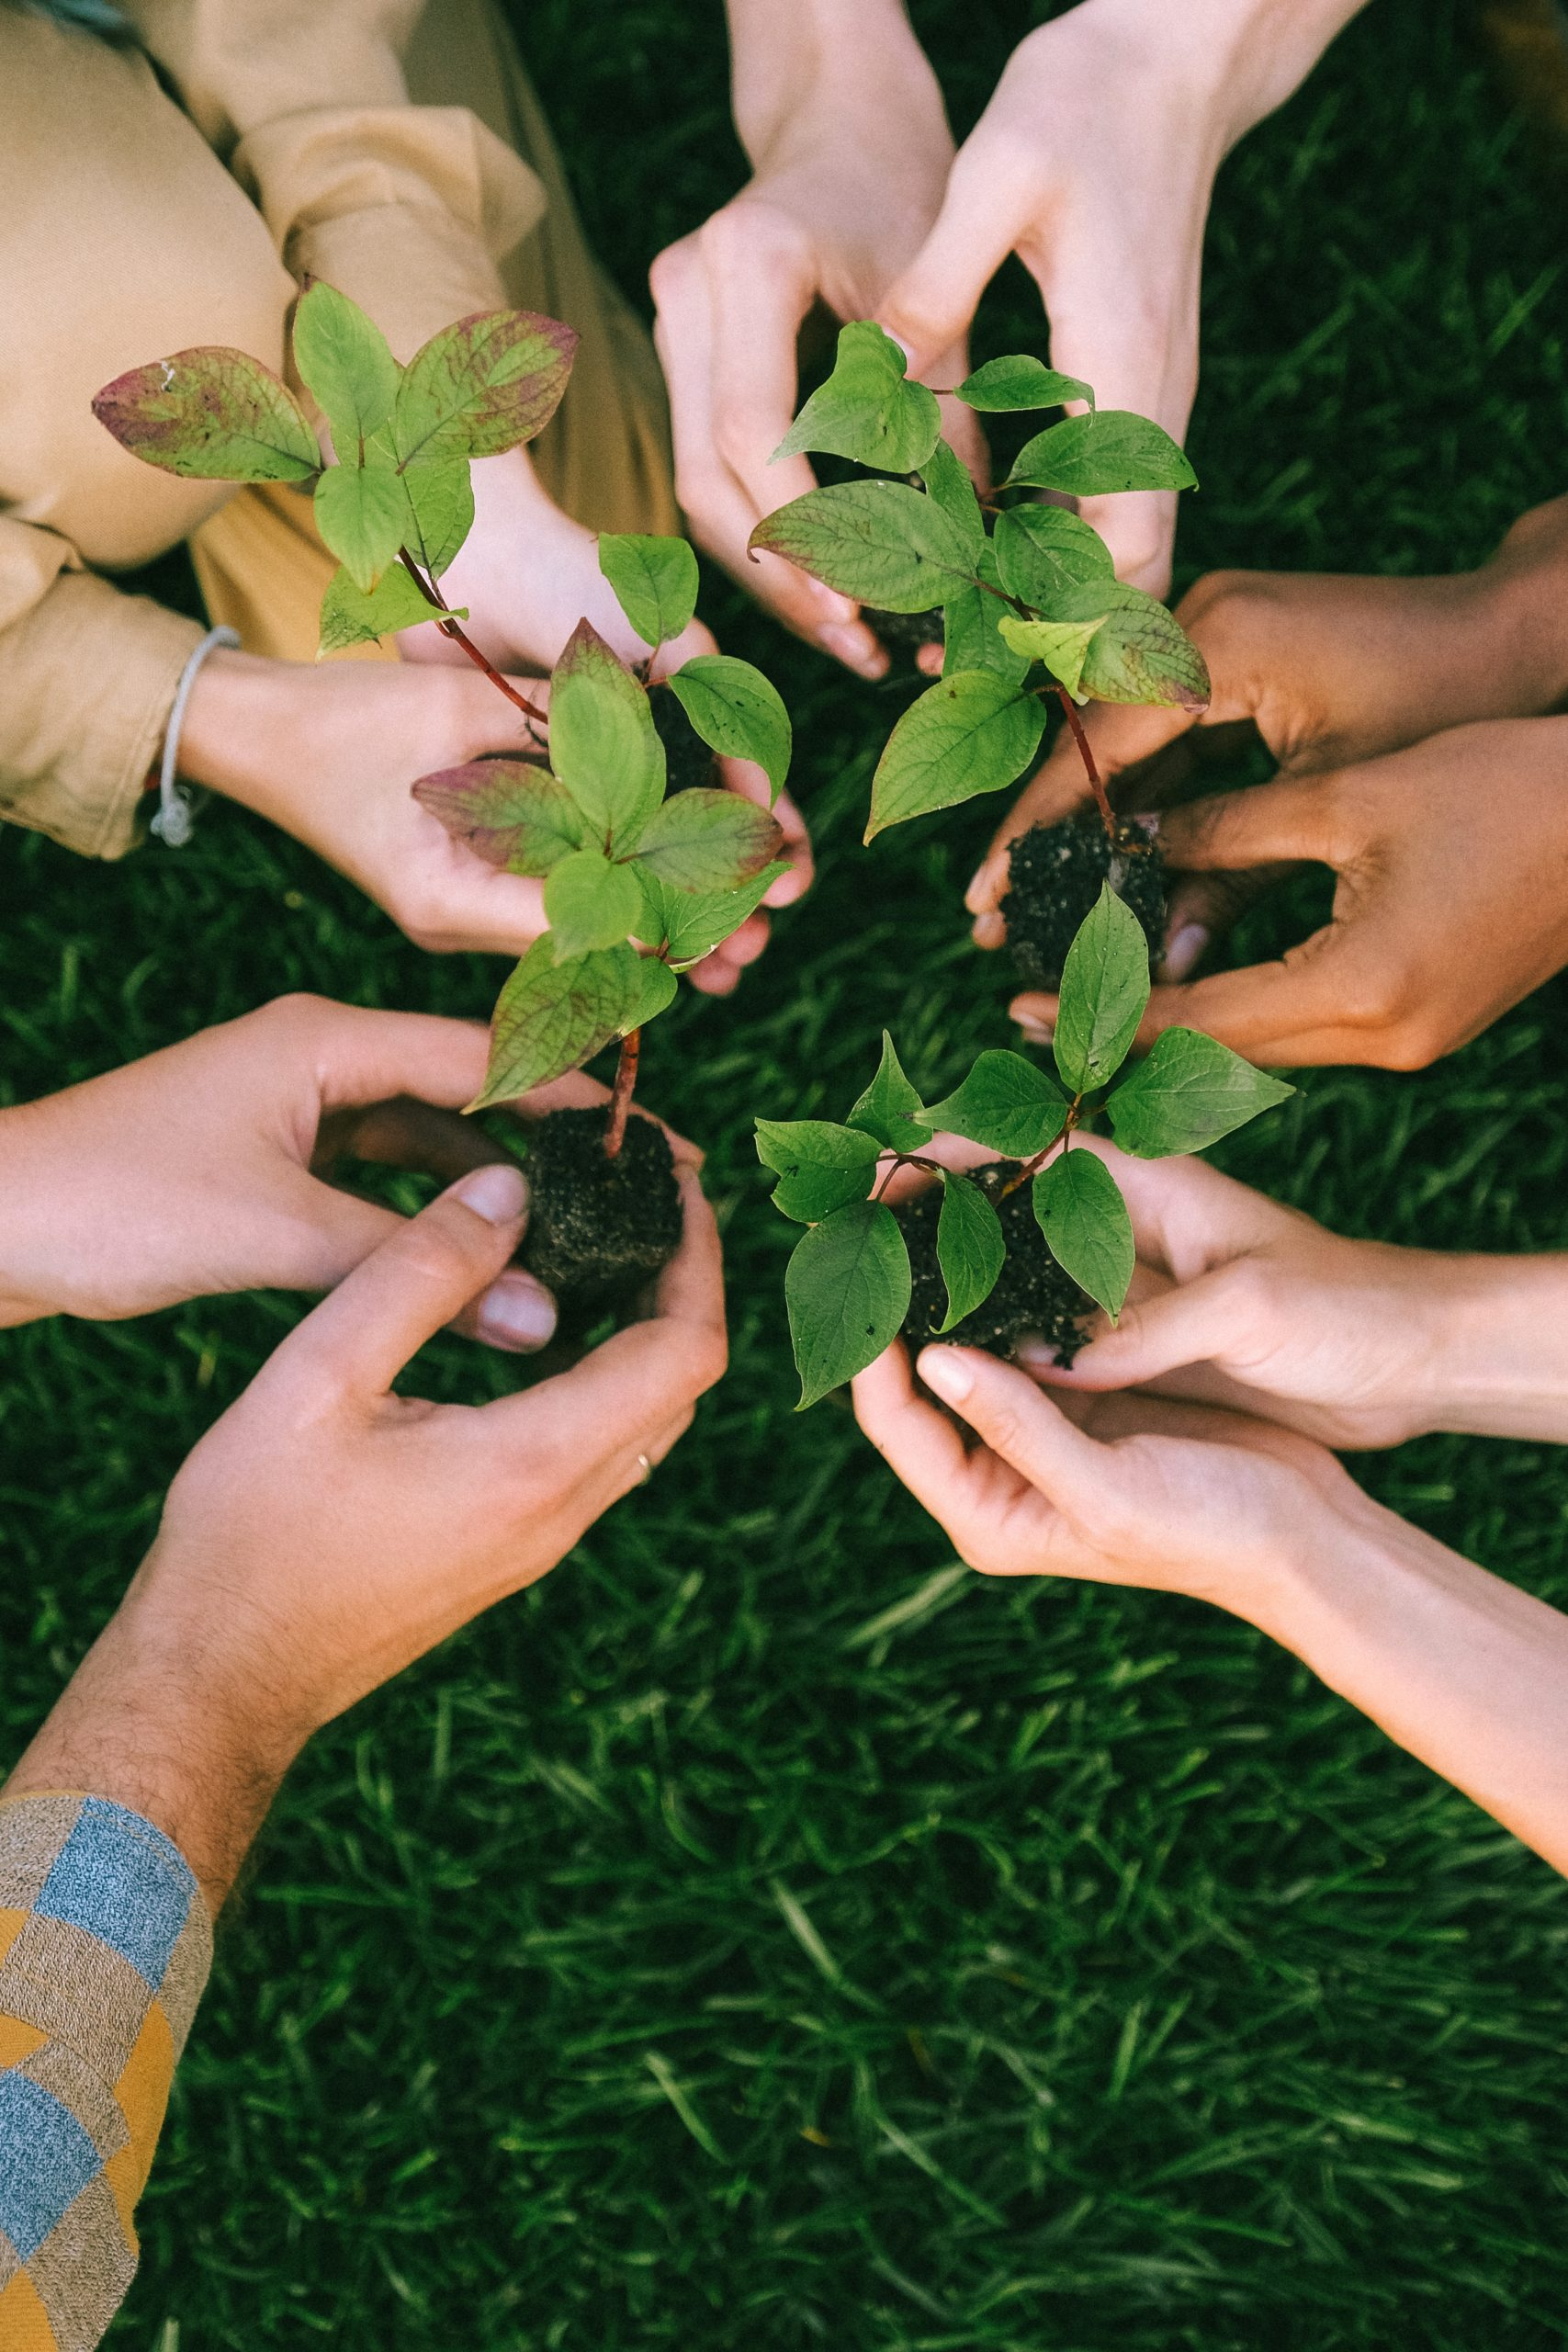 National Campaign mobilizes partners and volunteers to restore our earth | Earth Day